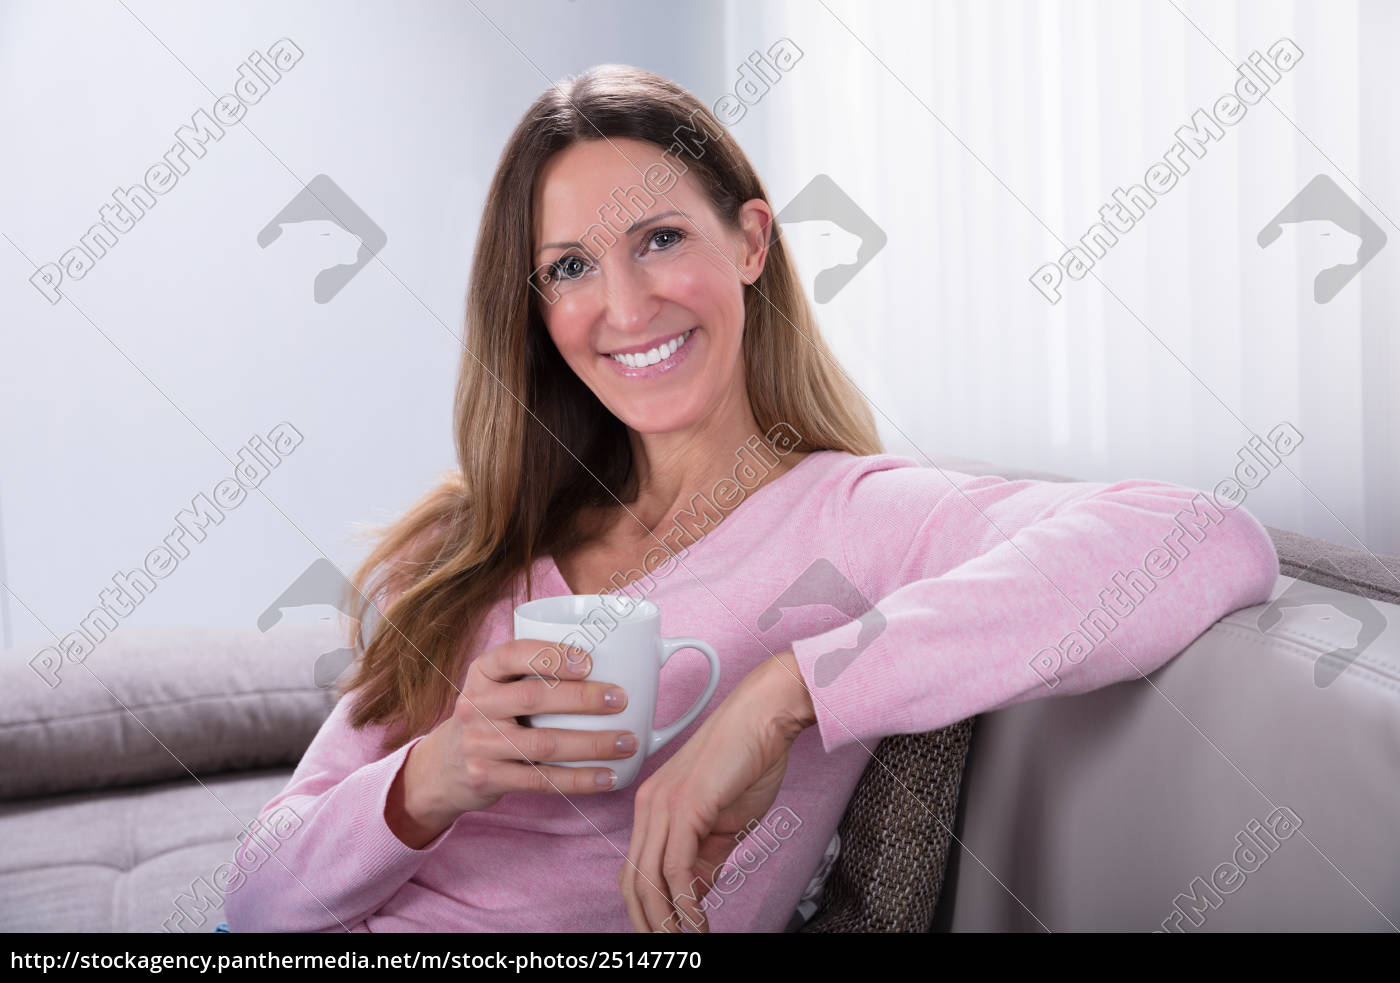 happy, woman, sitting, on, sofa, holding - 25147770